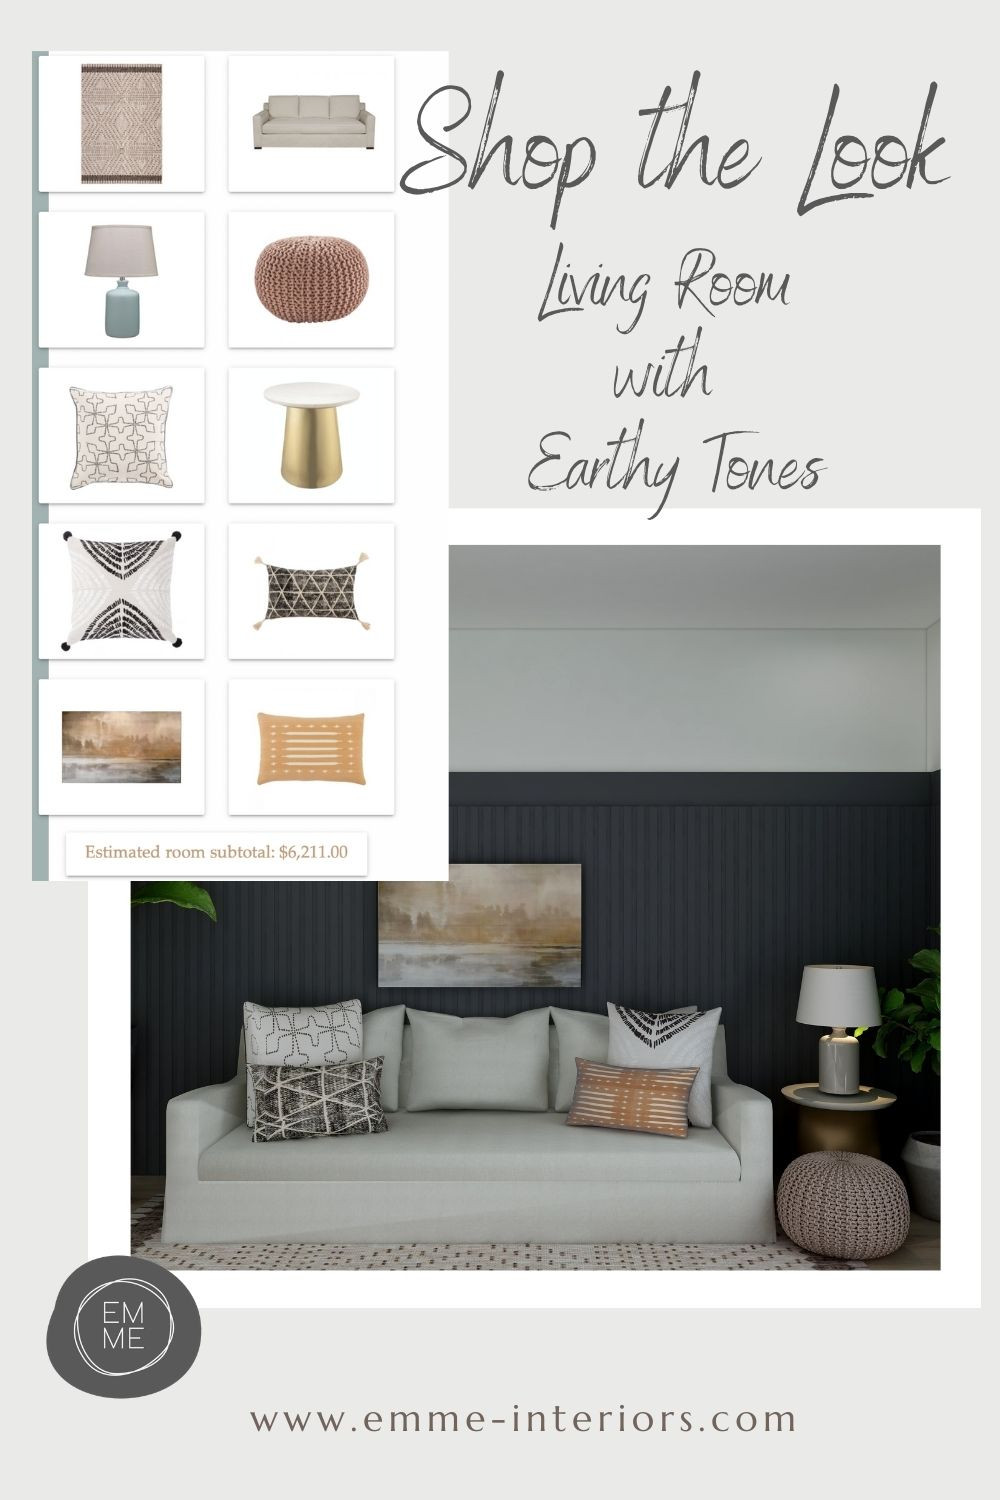 A Living Room Design using earthy colours and offering tips and products to achieve this look.